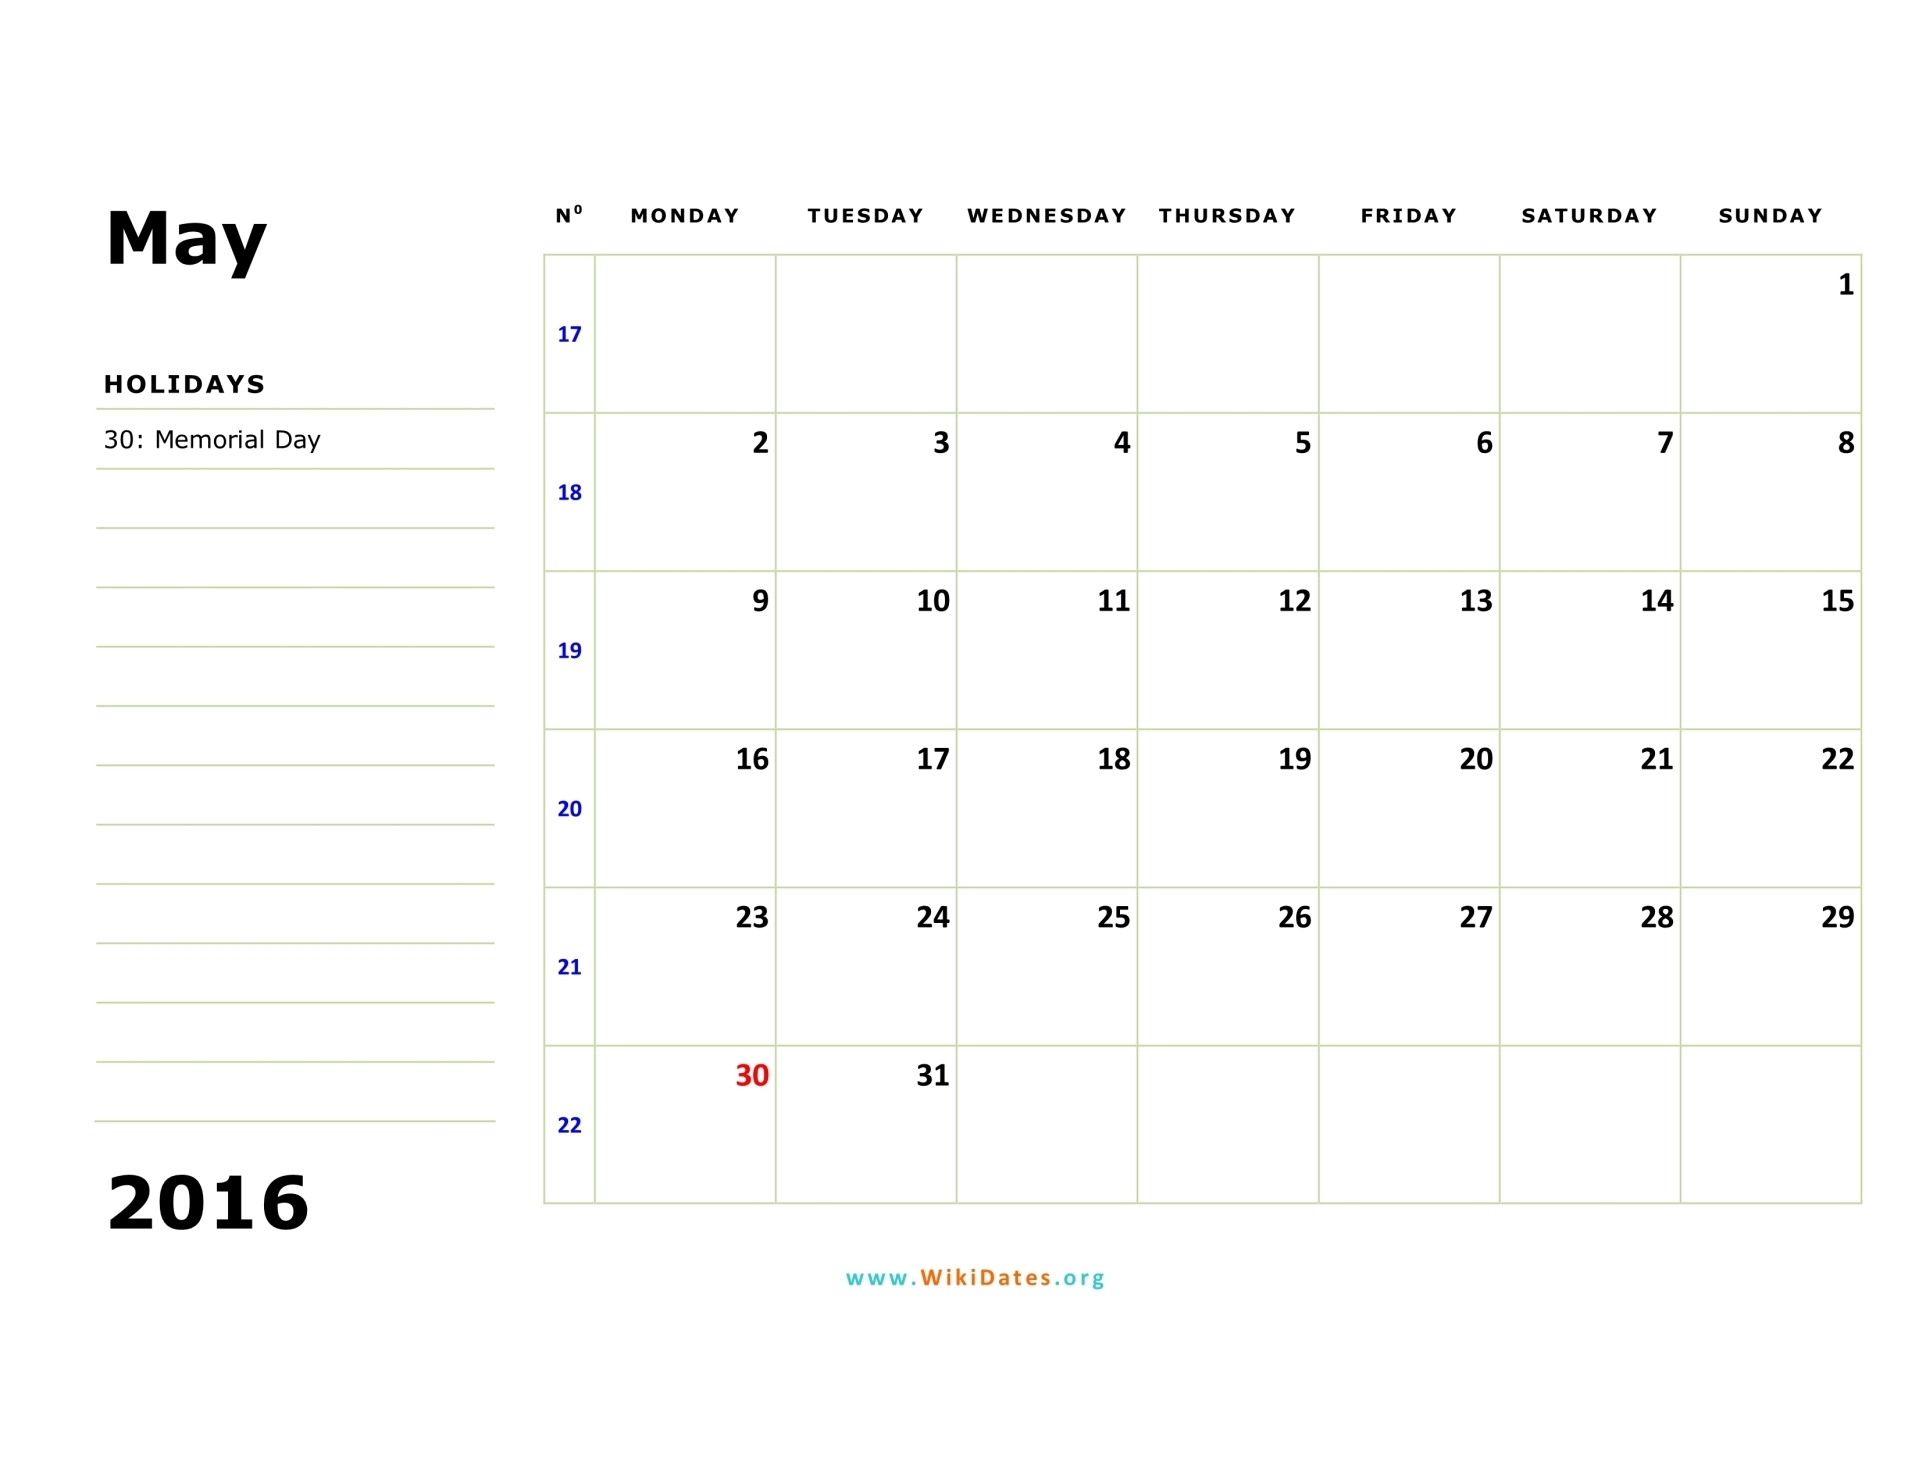 May 2016 Calendar | WikiDates.org